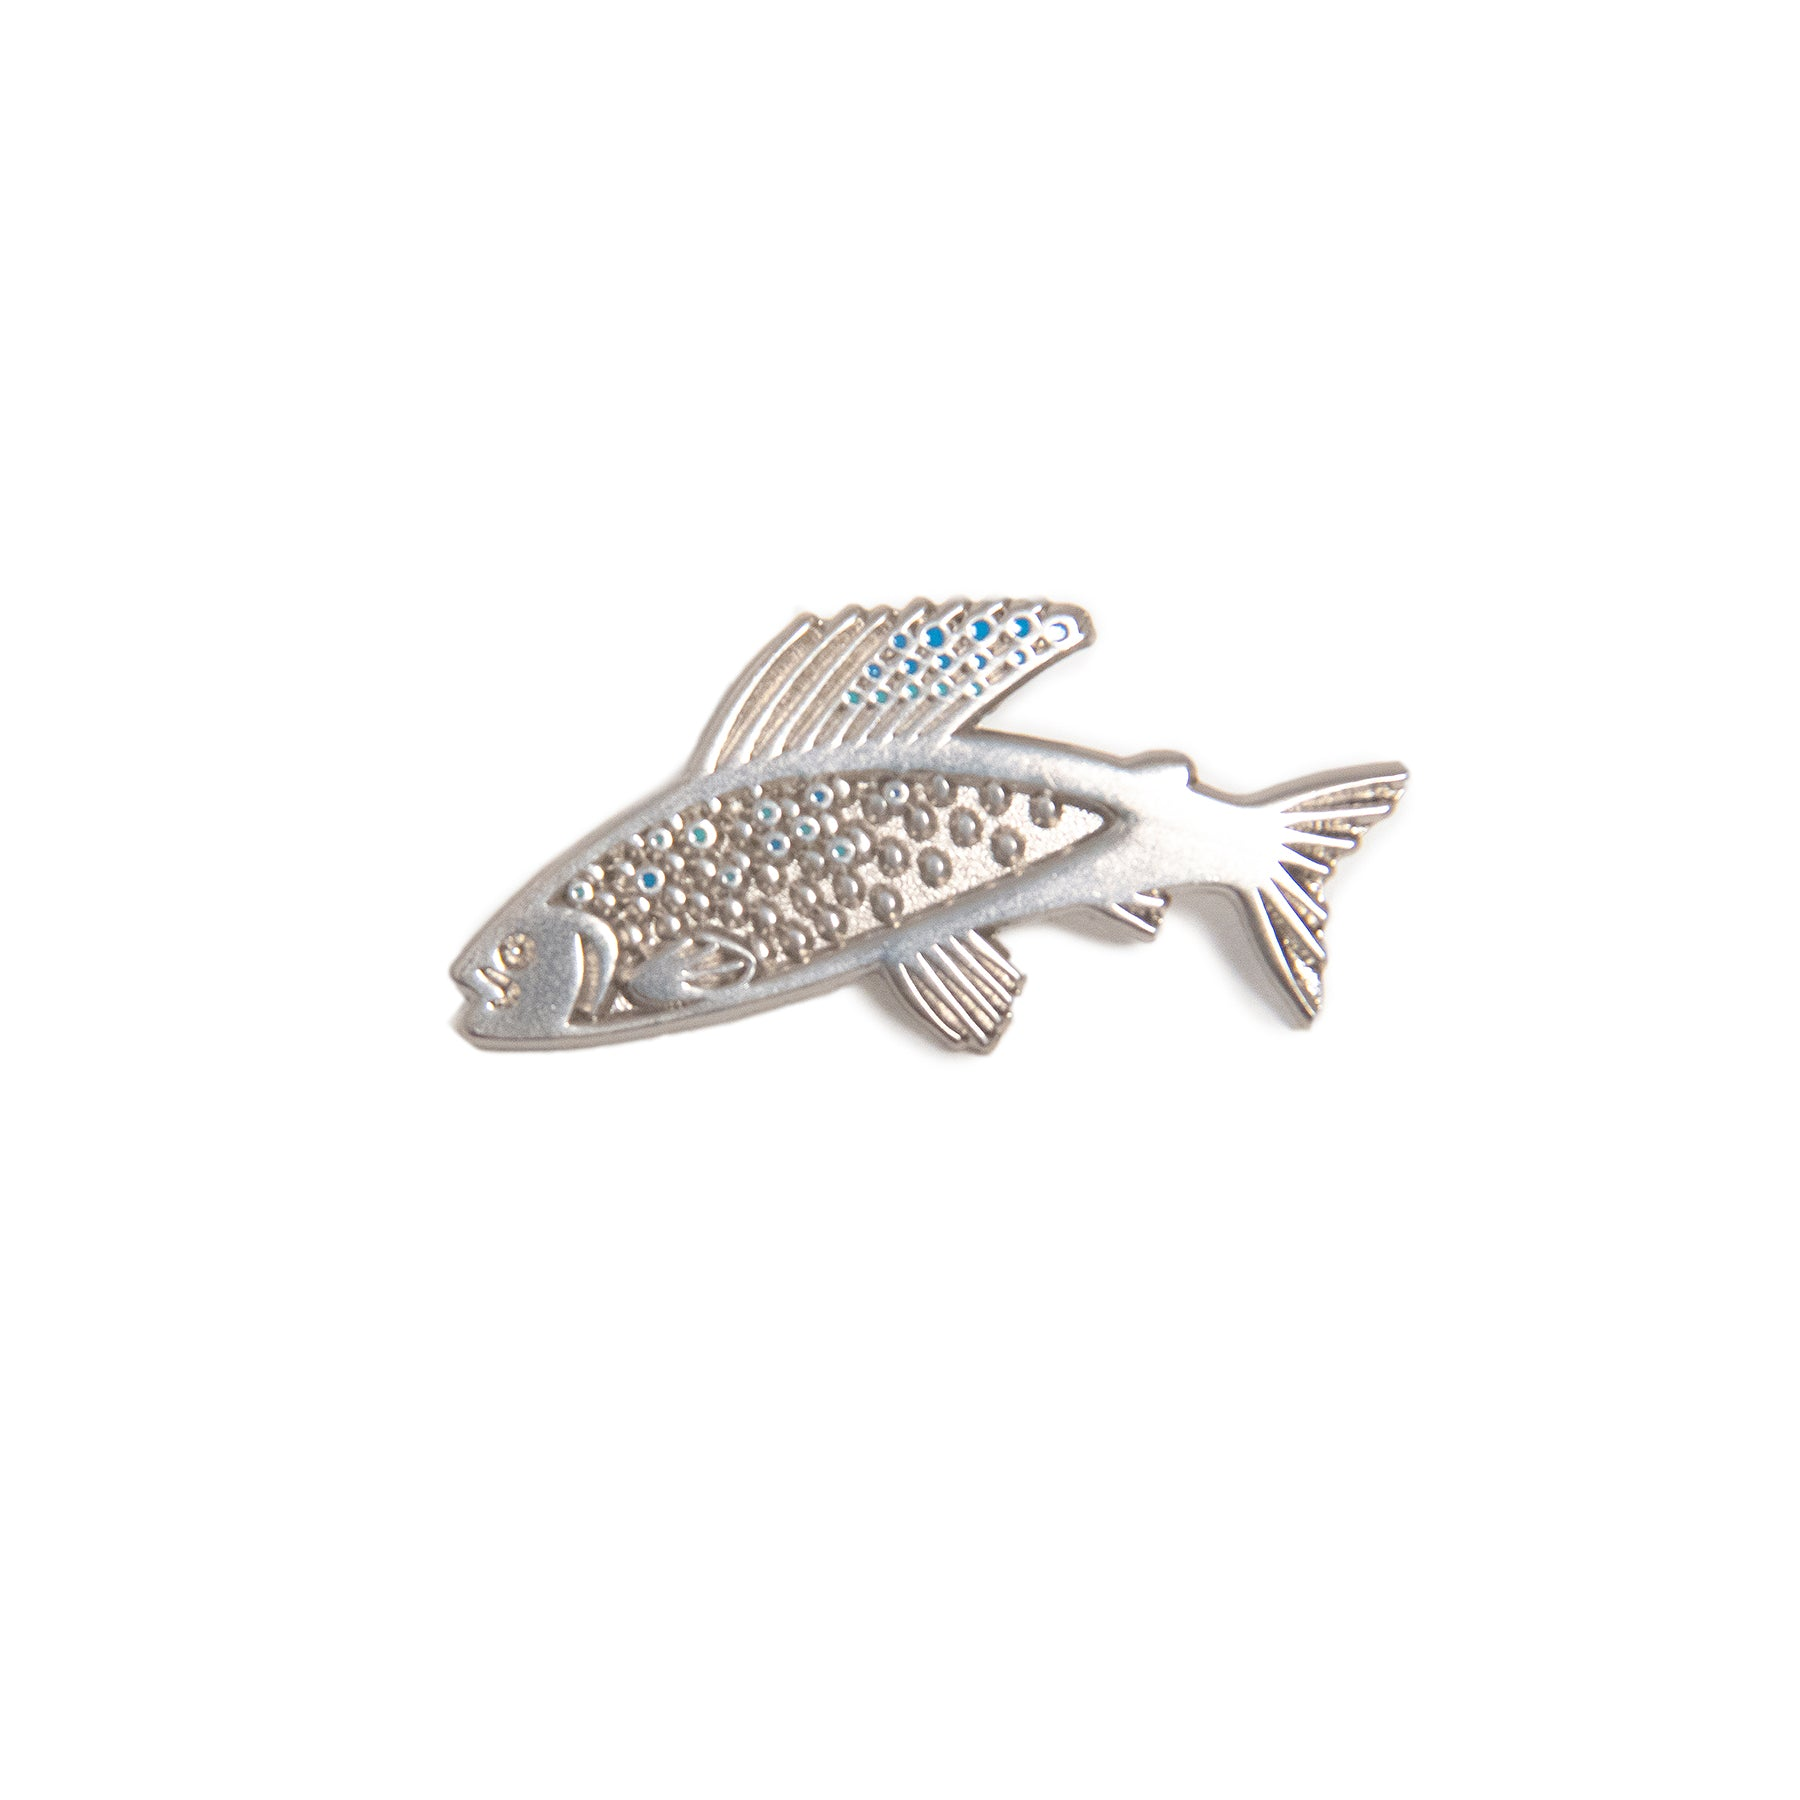 Michigan Arctic Grayling Initiative Enamel Pin